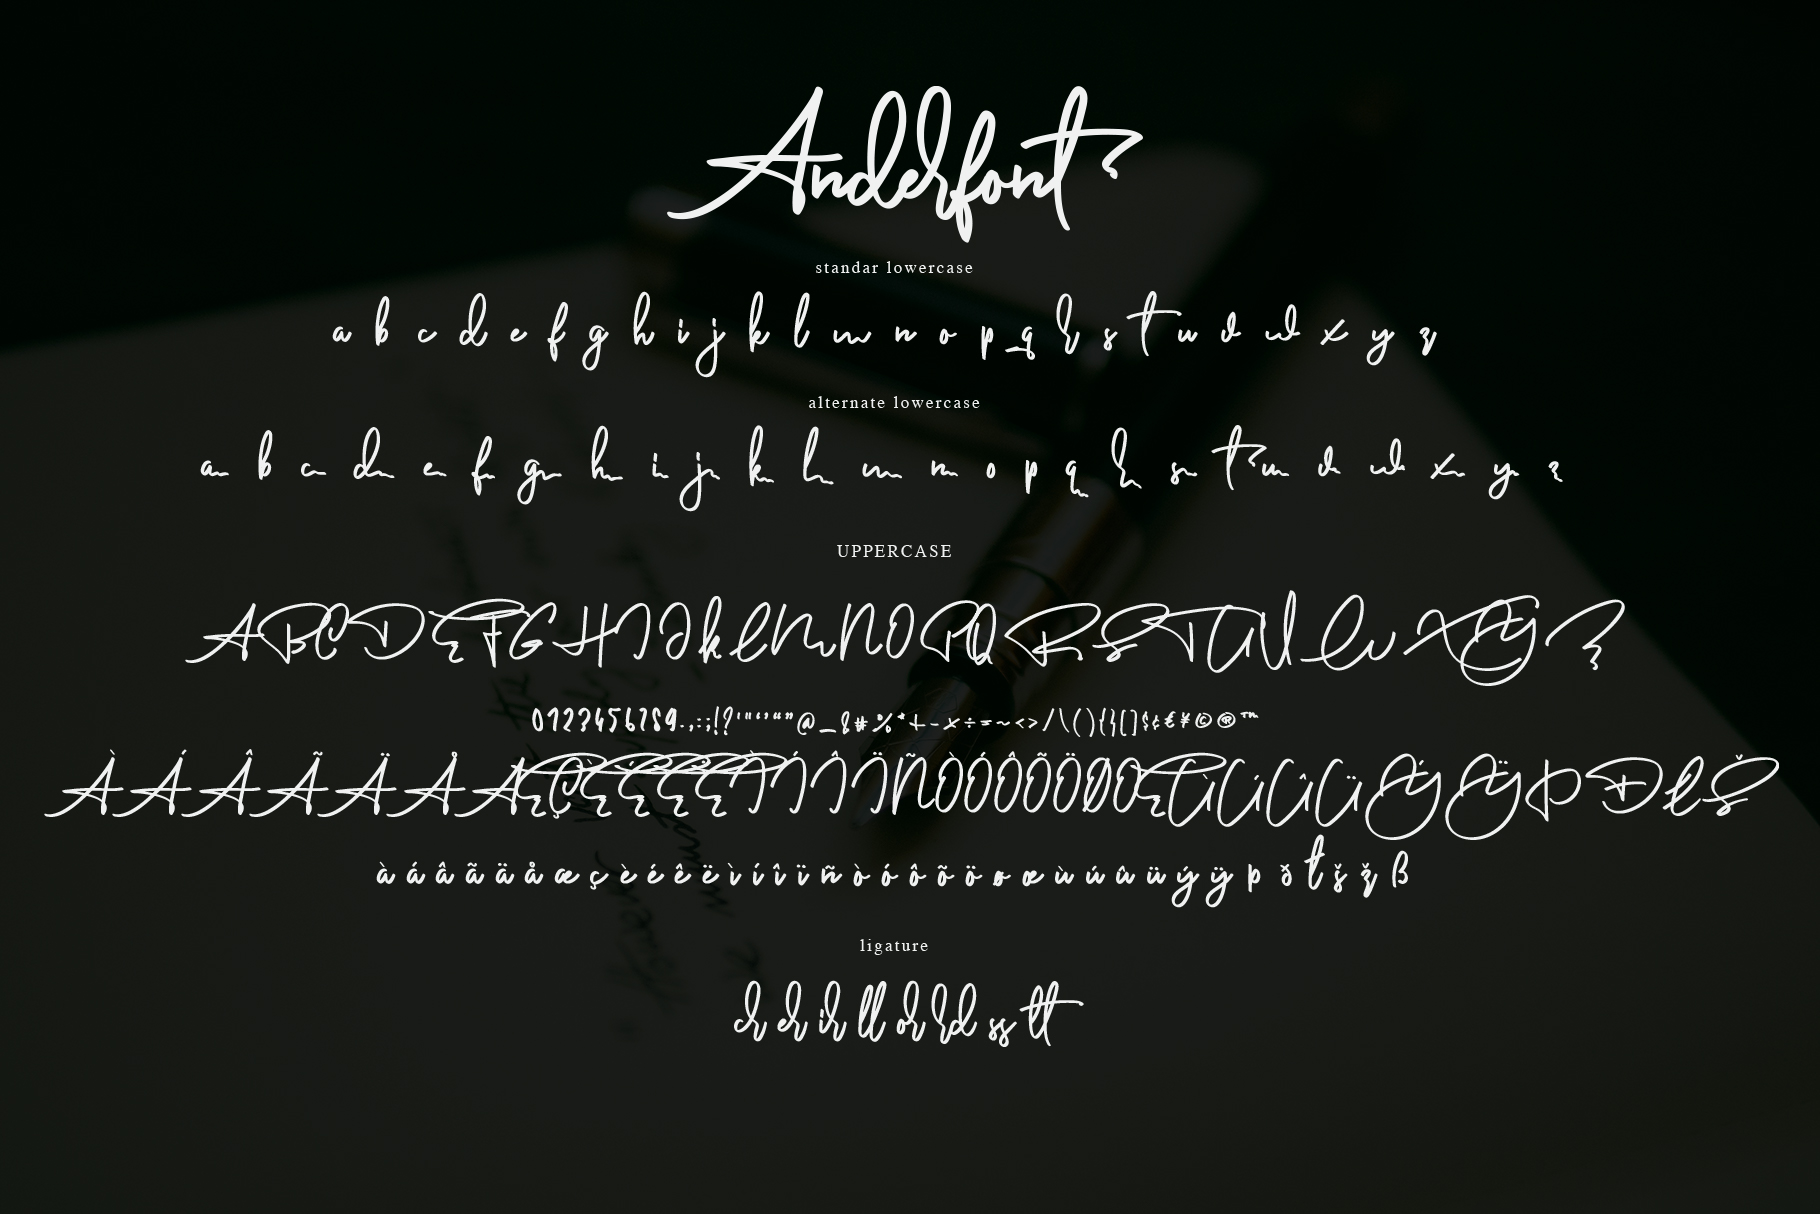 Anderfont-10